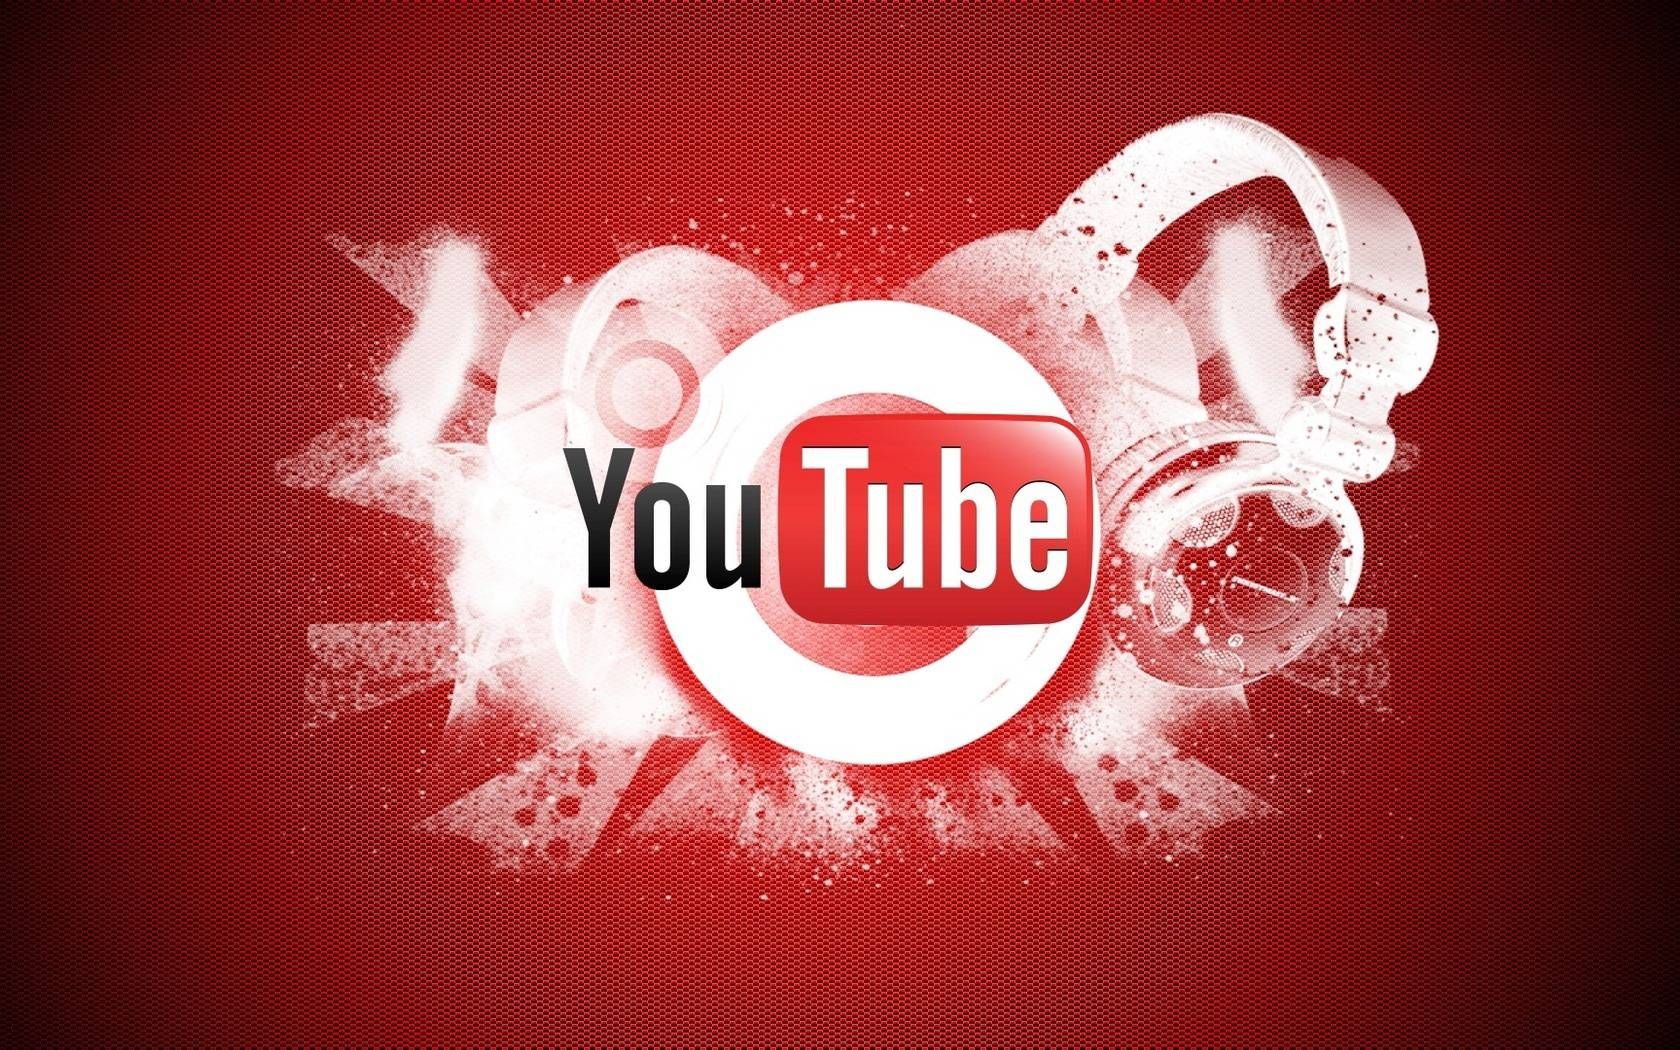 2048x1152 wallpaper for youtube wallpapersafari - Cool youtube pictures ...